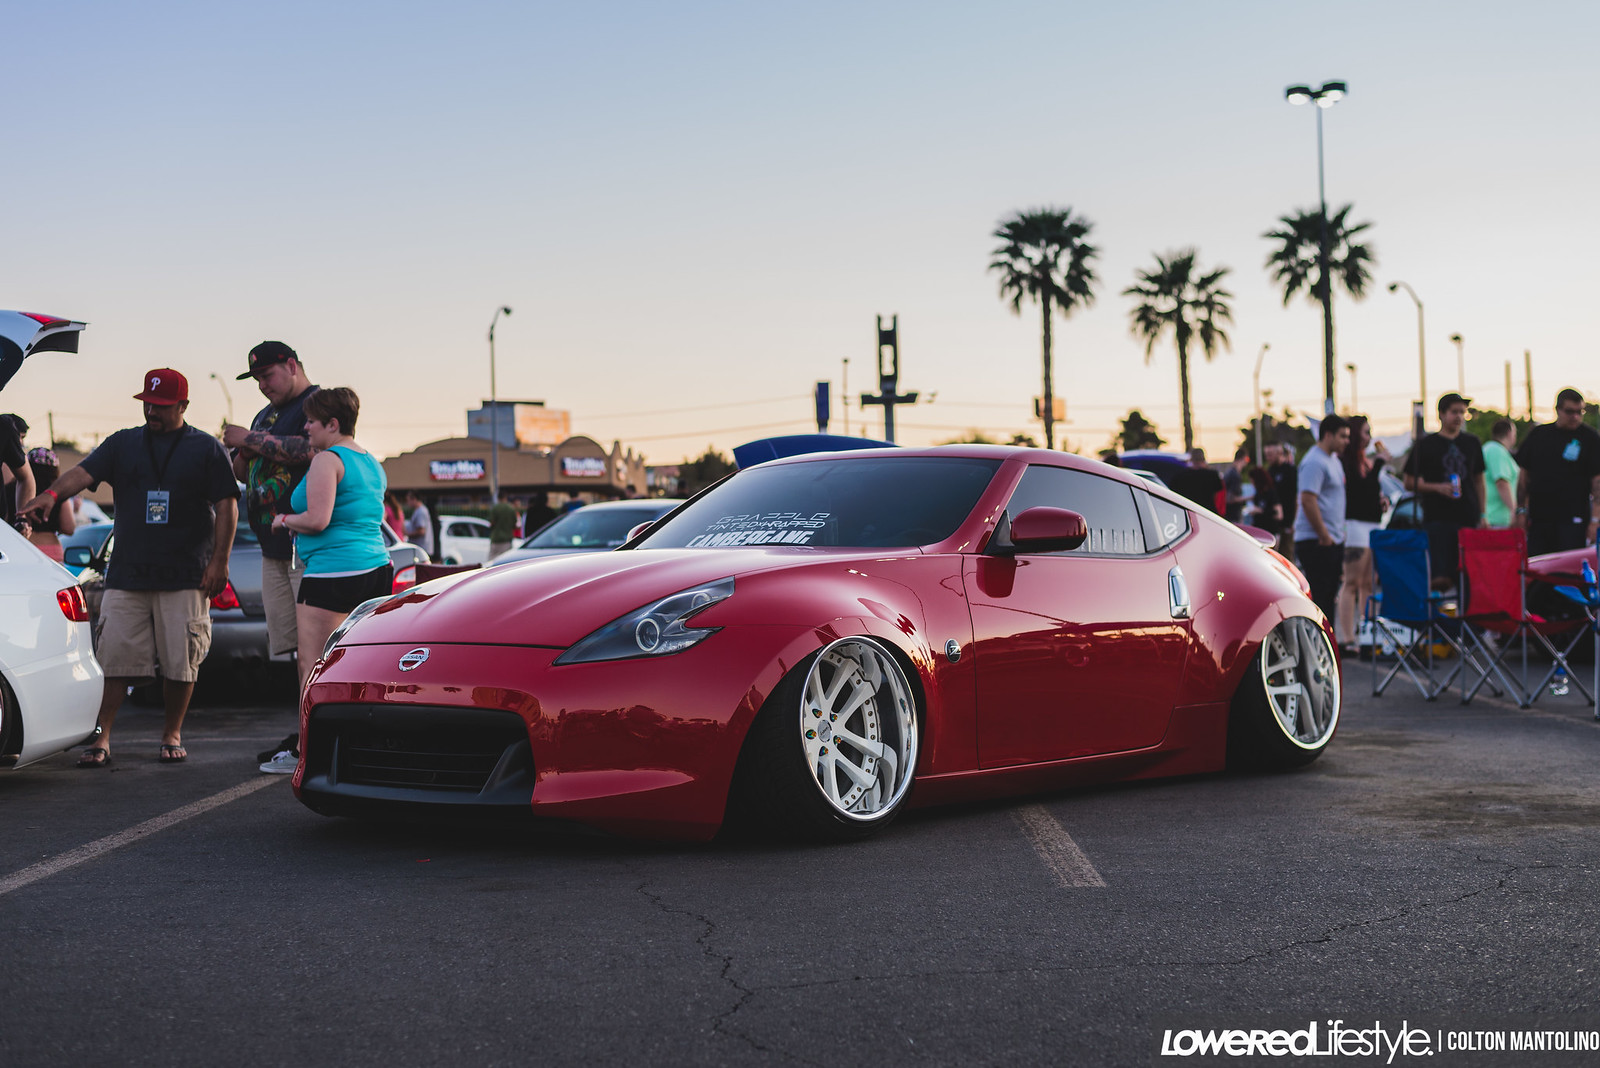 Stance Wars Is The Car Meet For The Modern Day Lowriders With One Major Difference Moto Networks